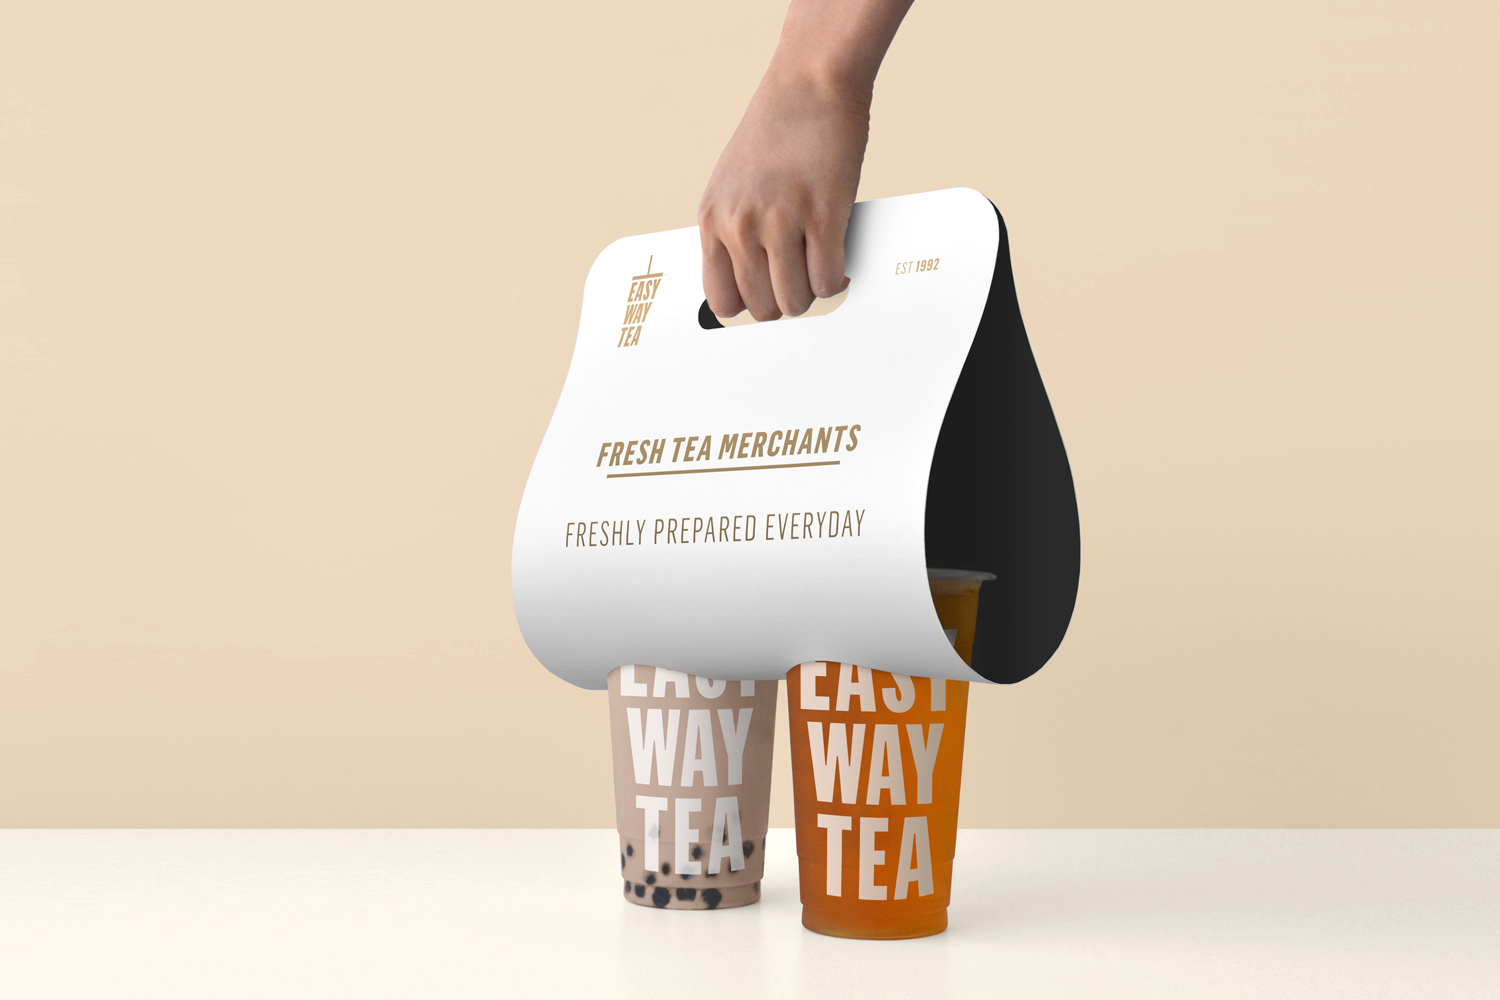 easy-way-tea-6-hero-product-carrier